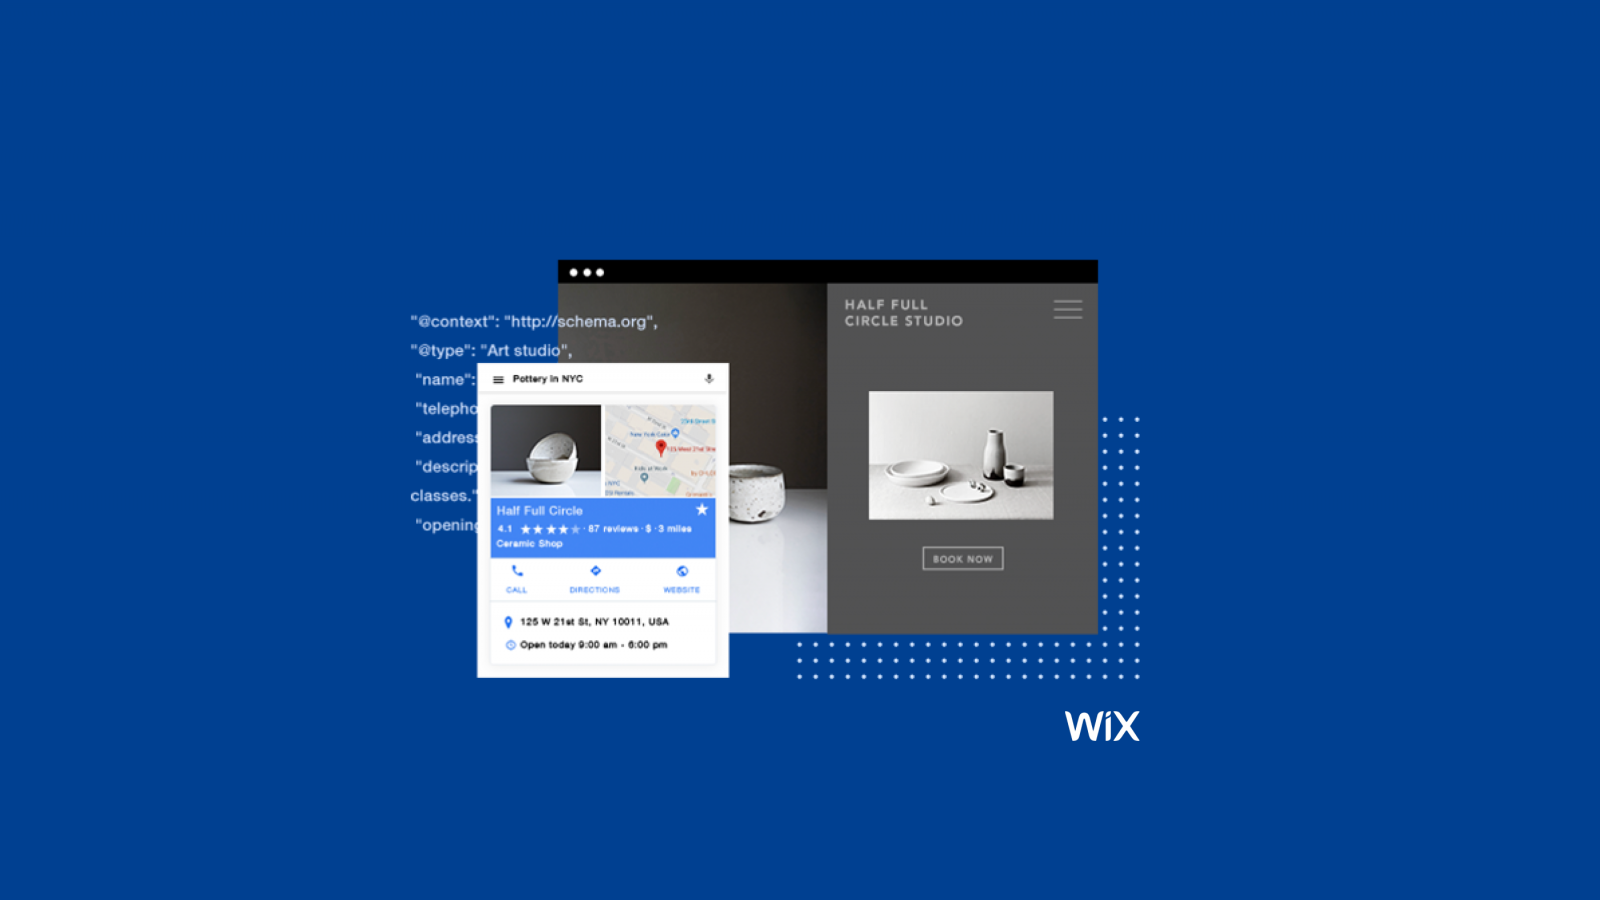 Get better SEO results for your site with WIX